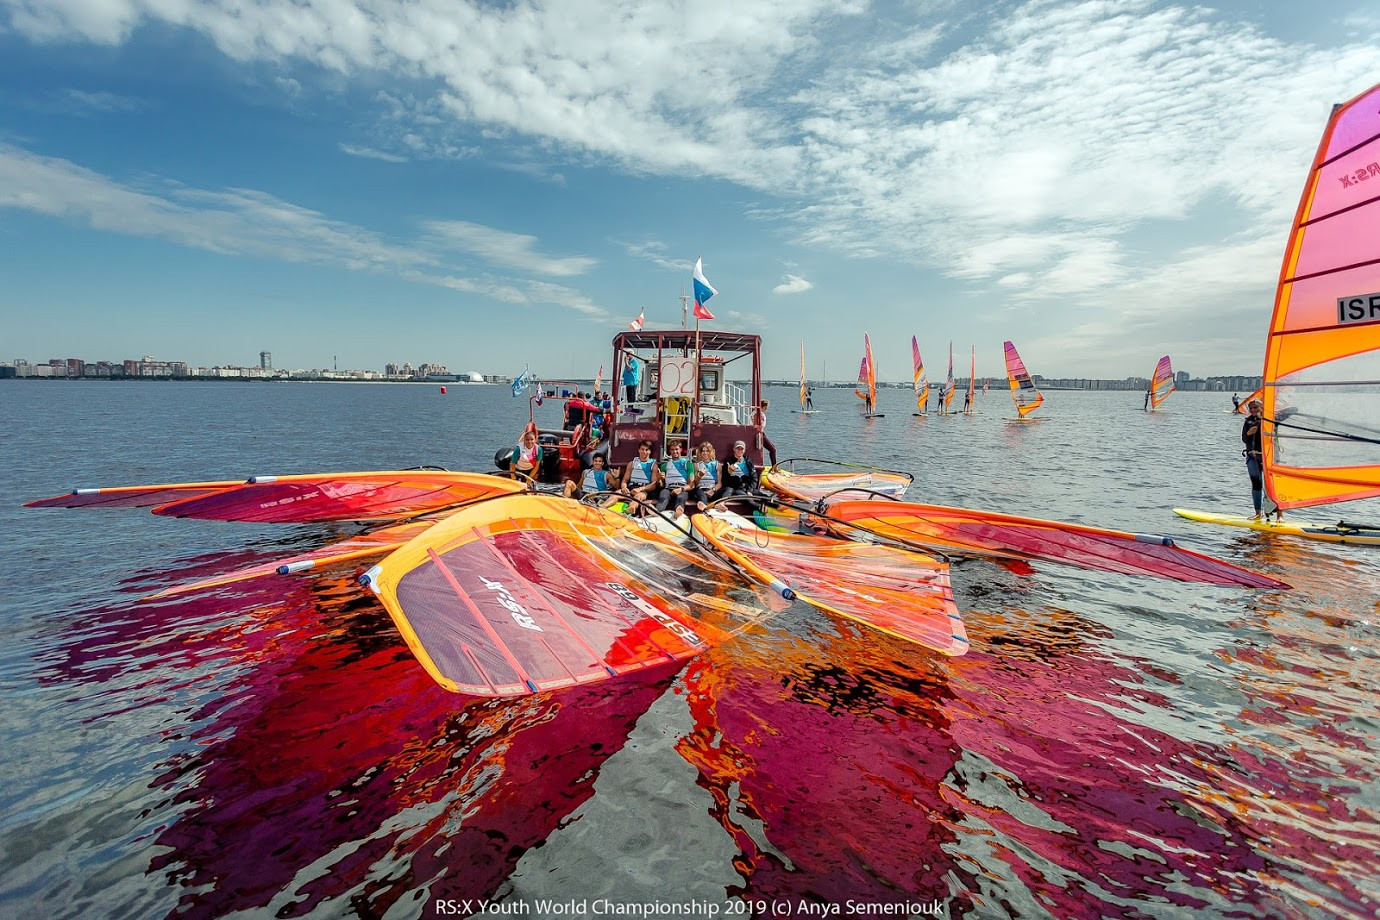 With winds only between two and three knots, and constantly fluctuating in direction, the race committee decided it was impossible to host fair racing ©Anya Semeniouk